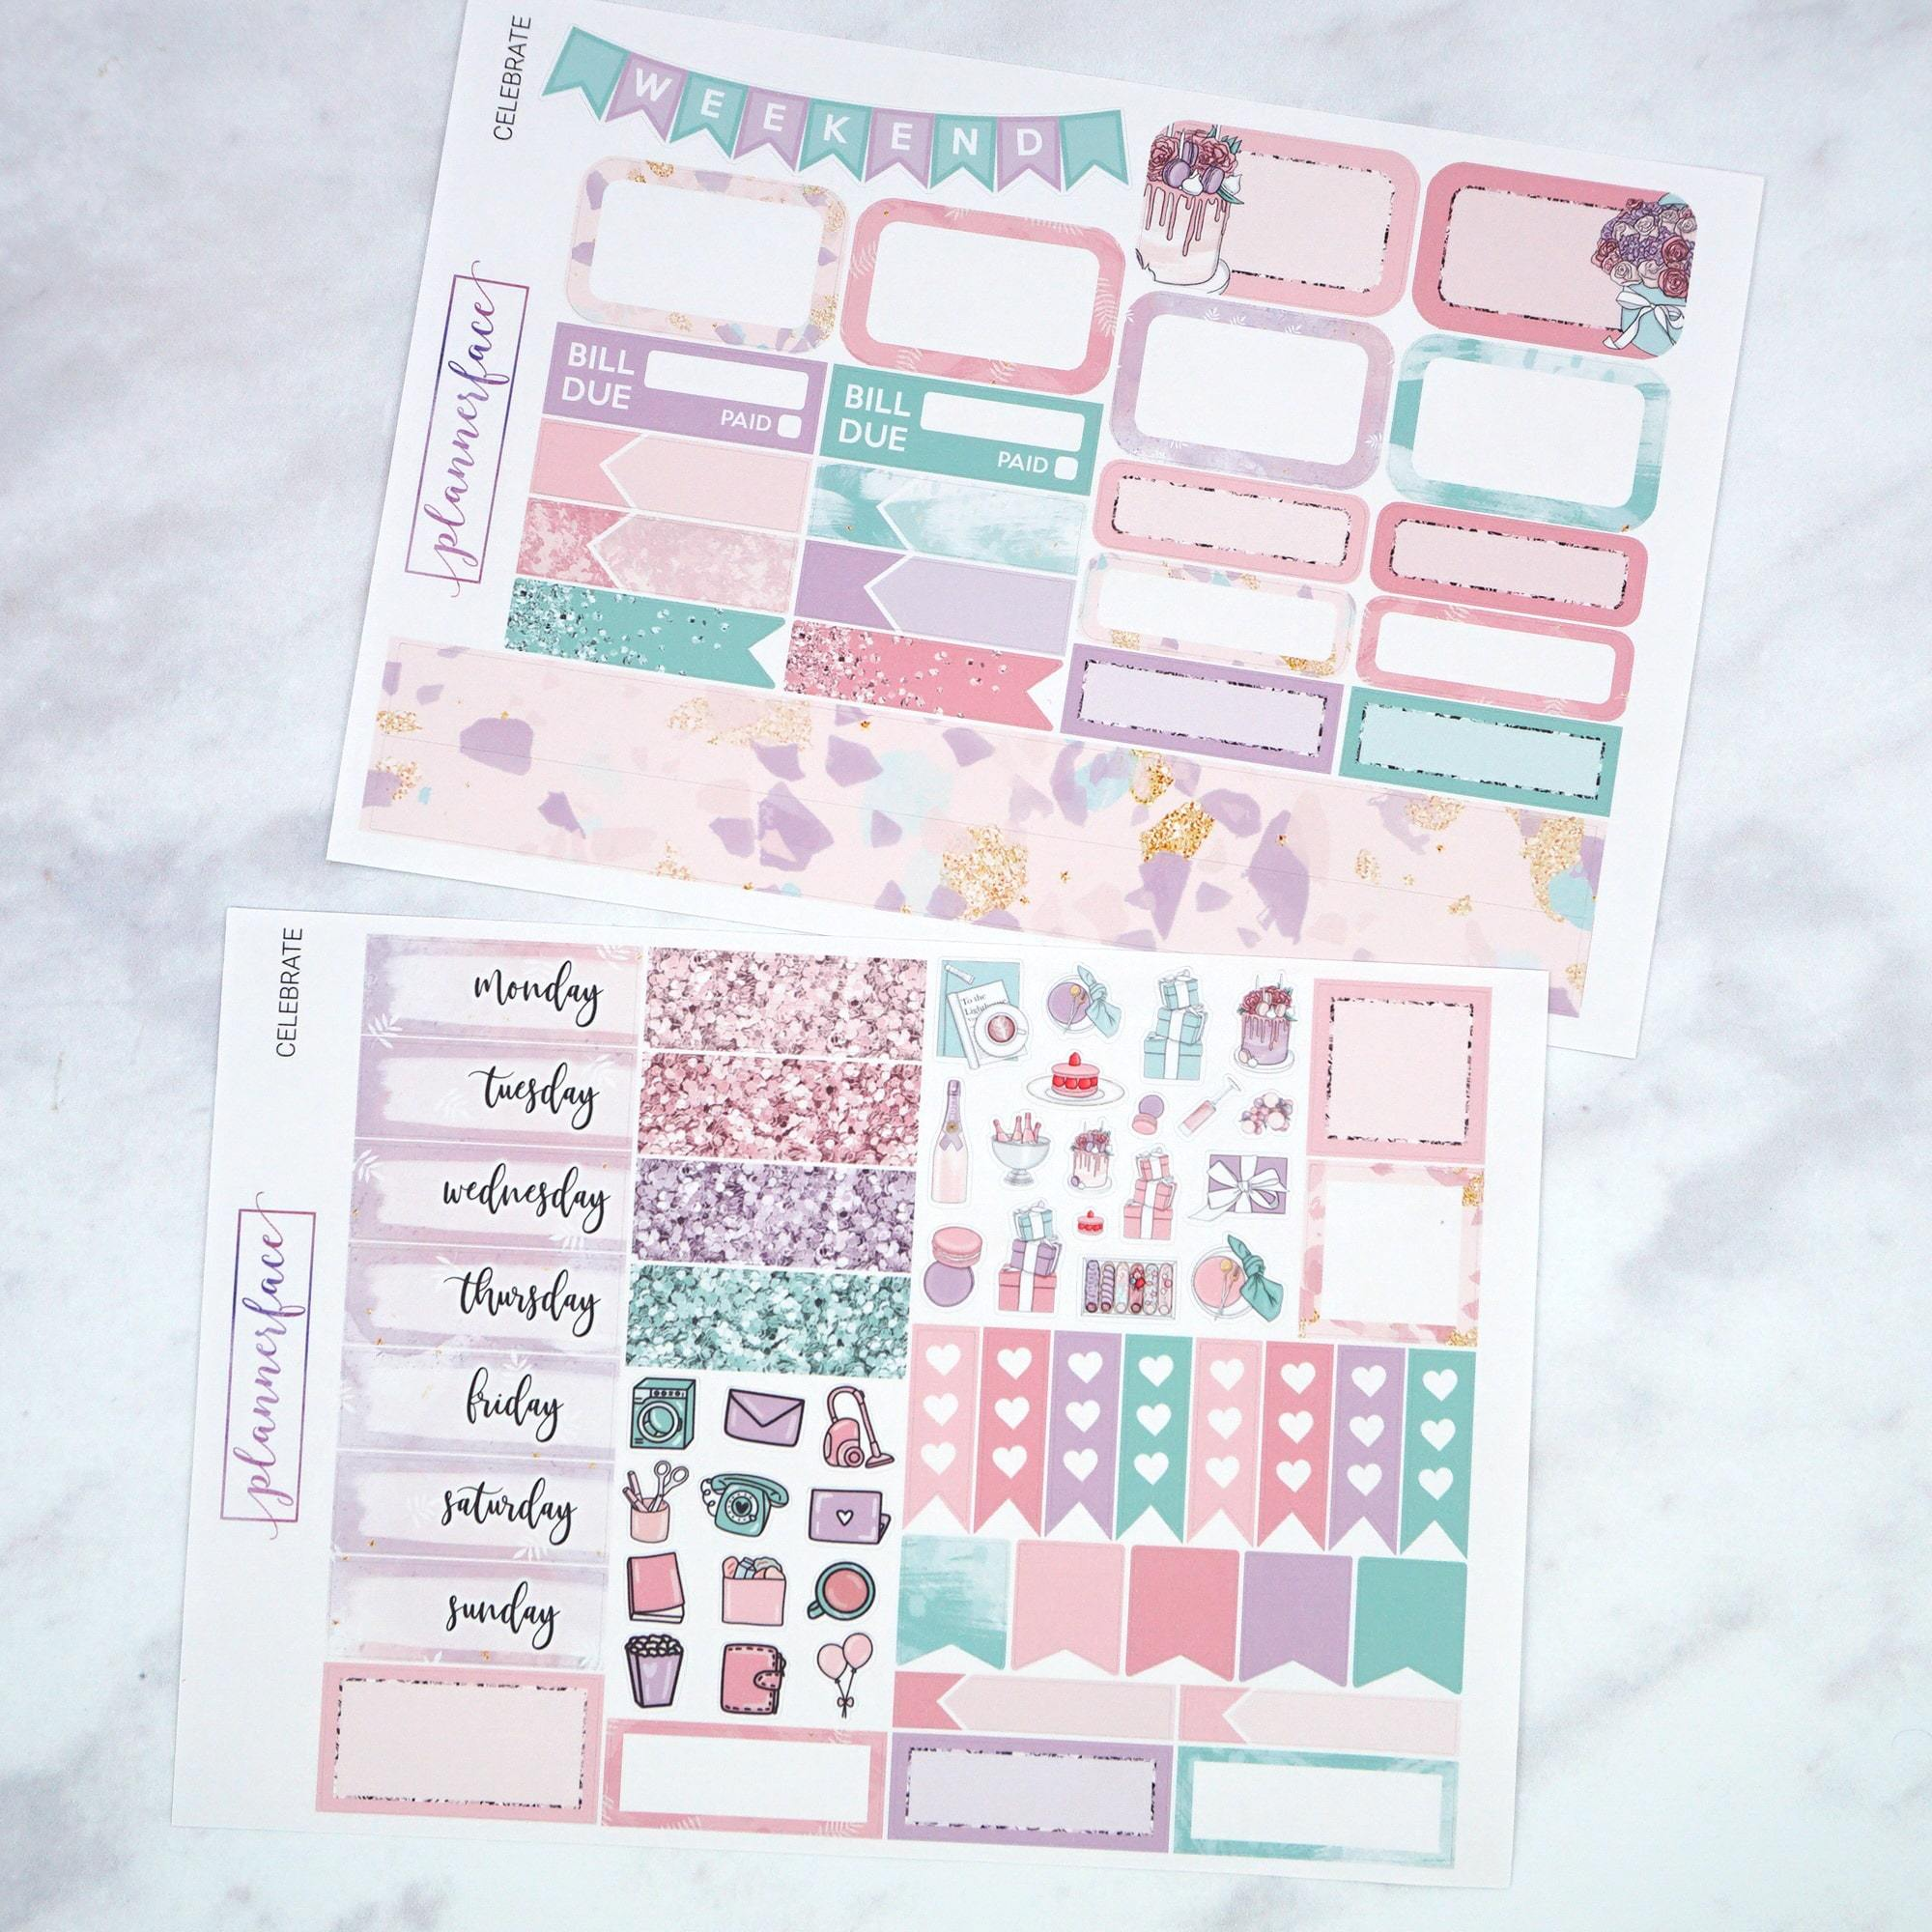 Plannerface Celebrate Mini Kit Planner Stickers